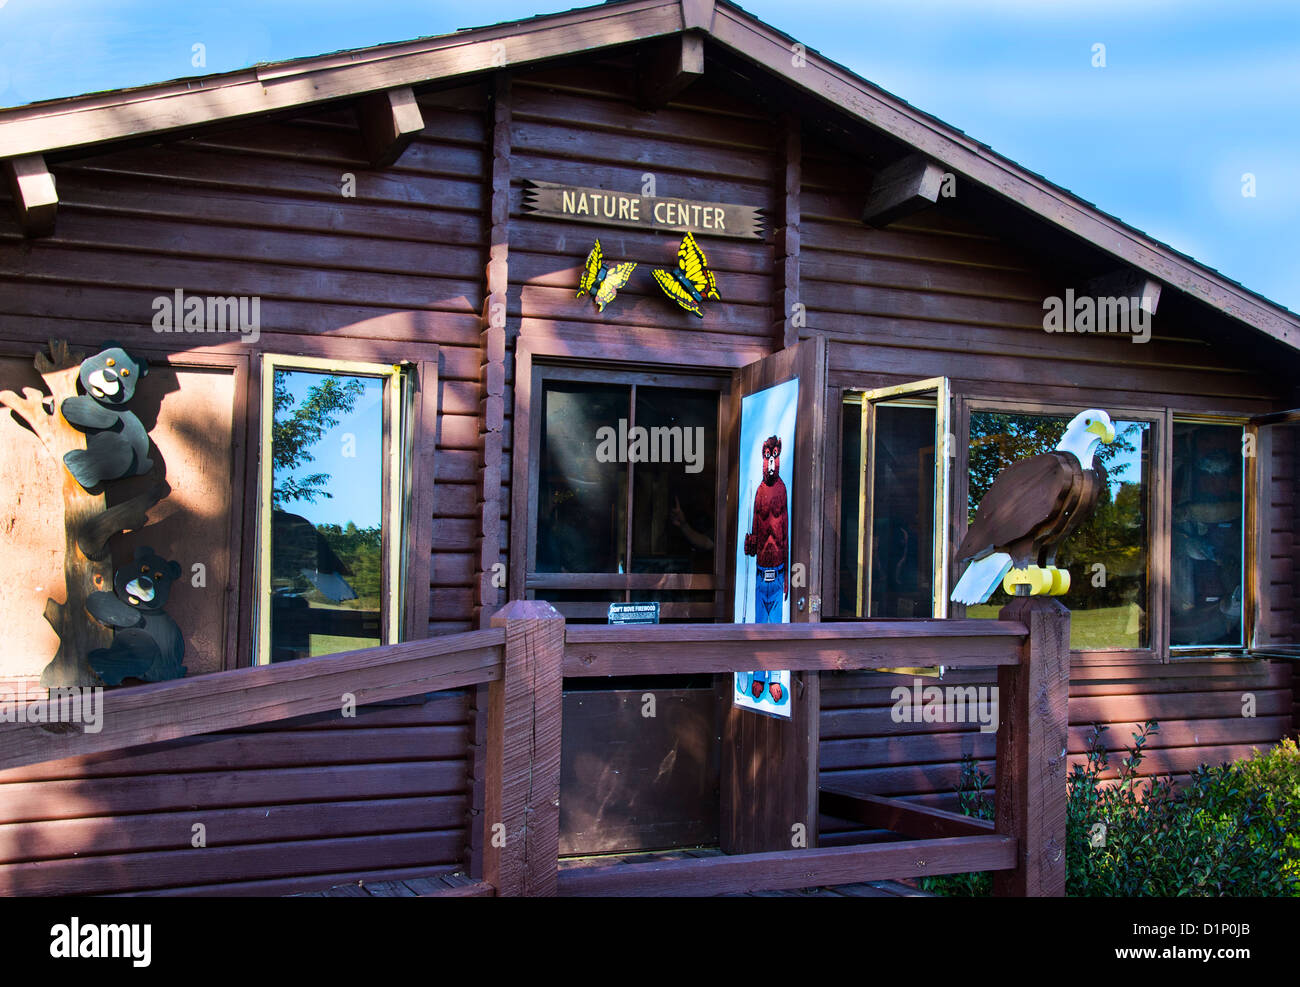 The Nature Center at the Camp 5 Logging Camp in Laona, Wisconsin - Stock Image